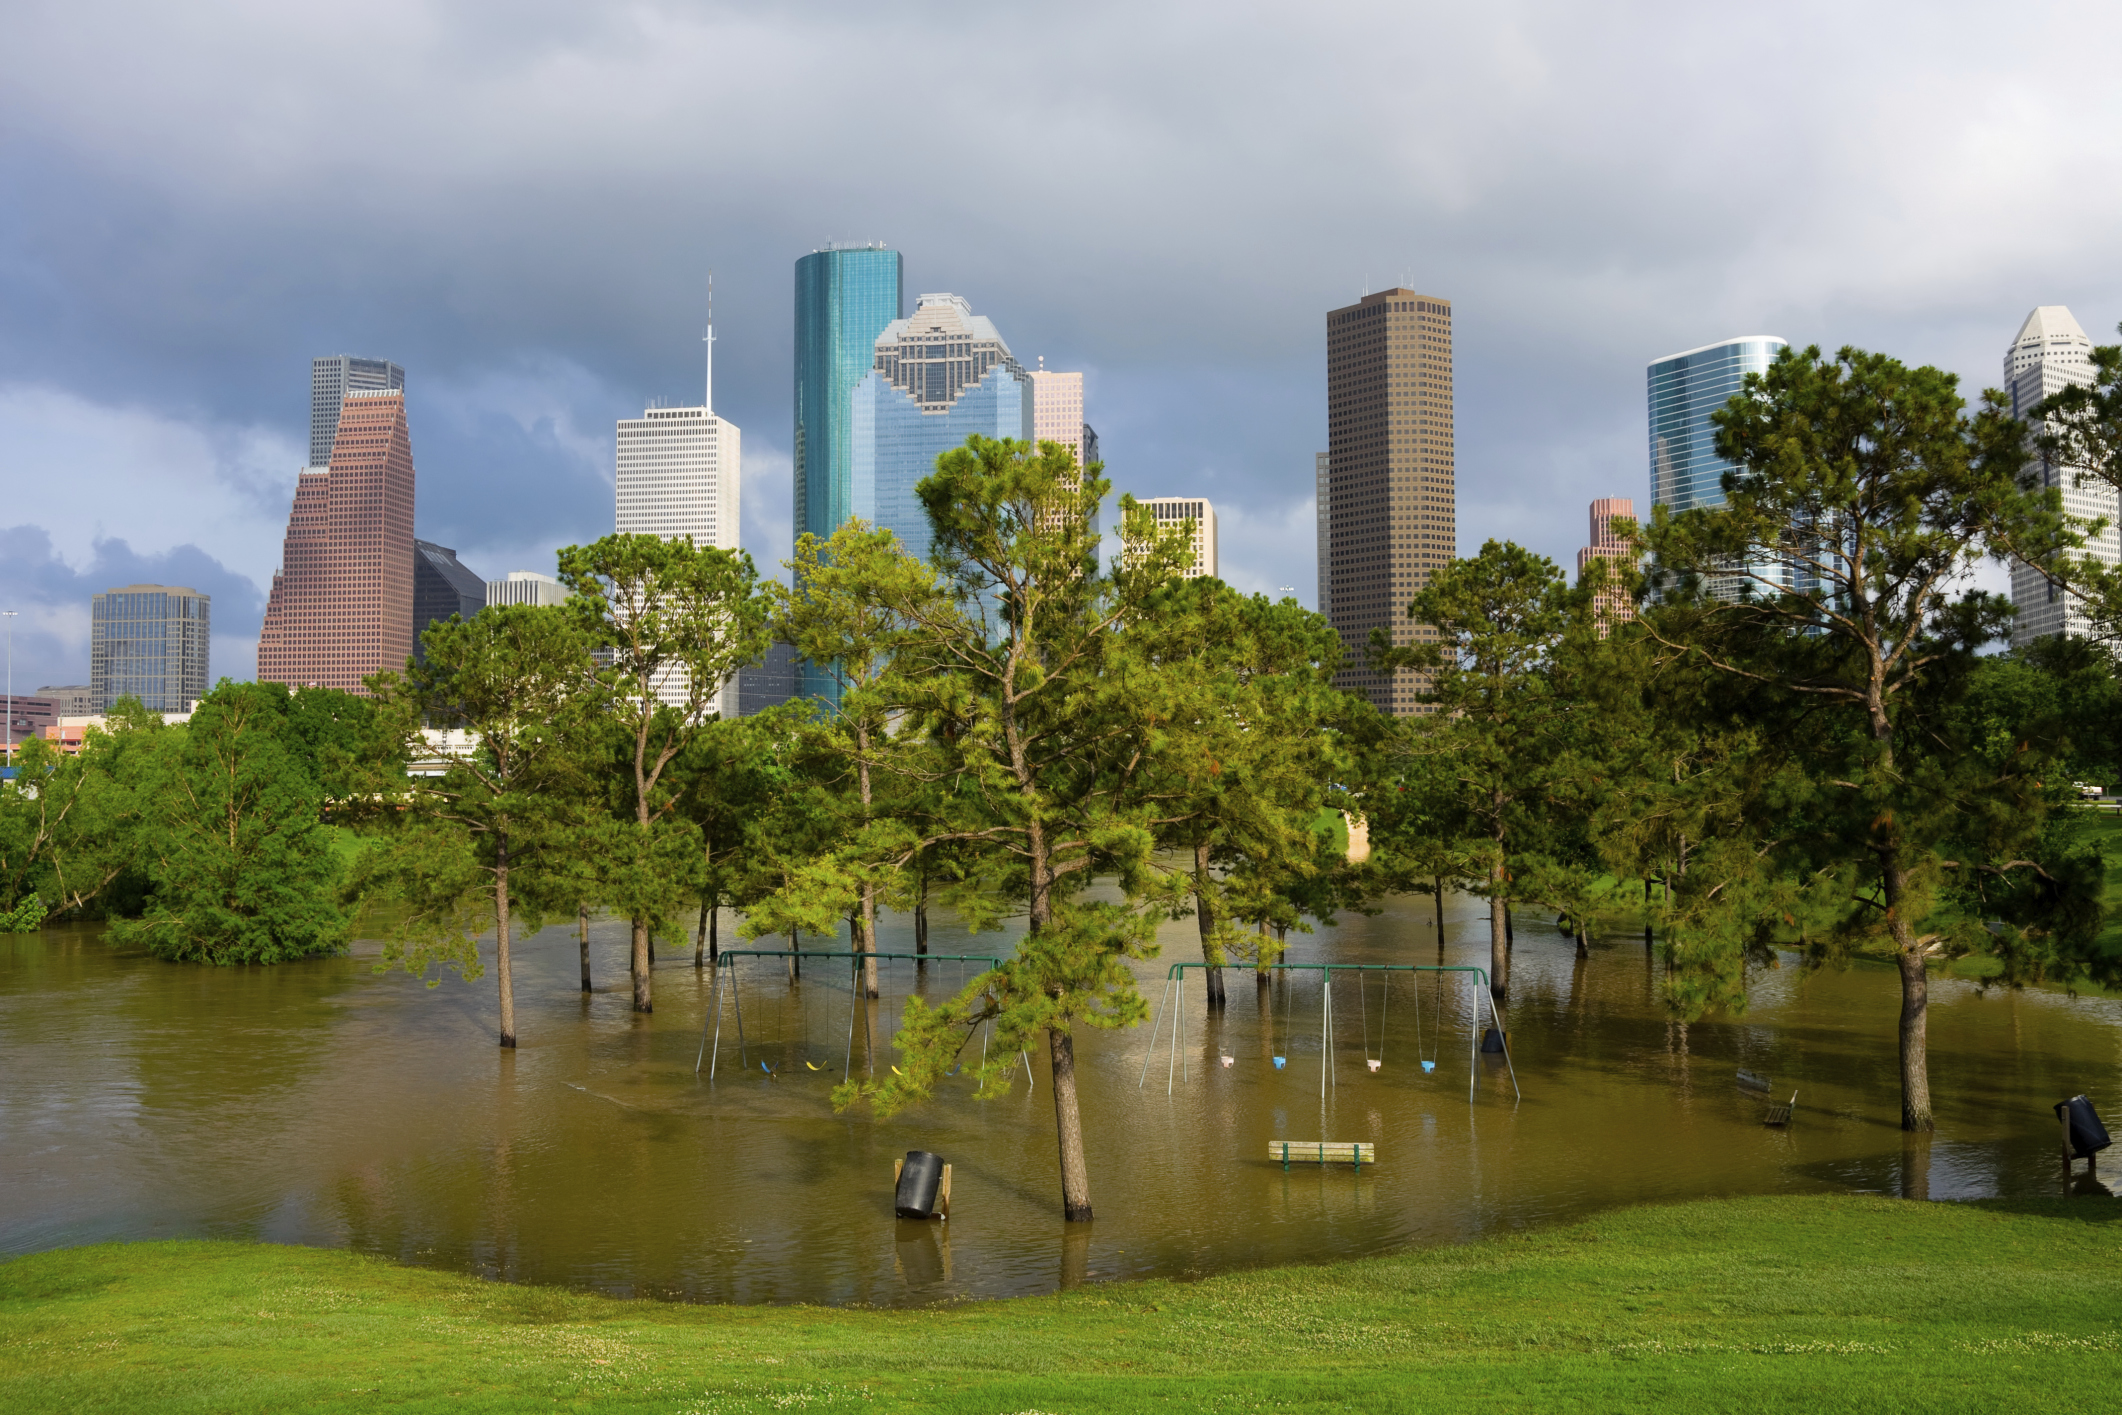 Watch Out New York: Houston Floods Could be Headed Your Way